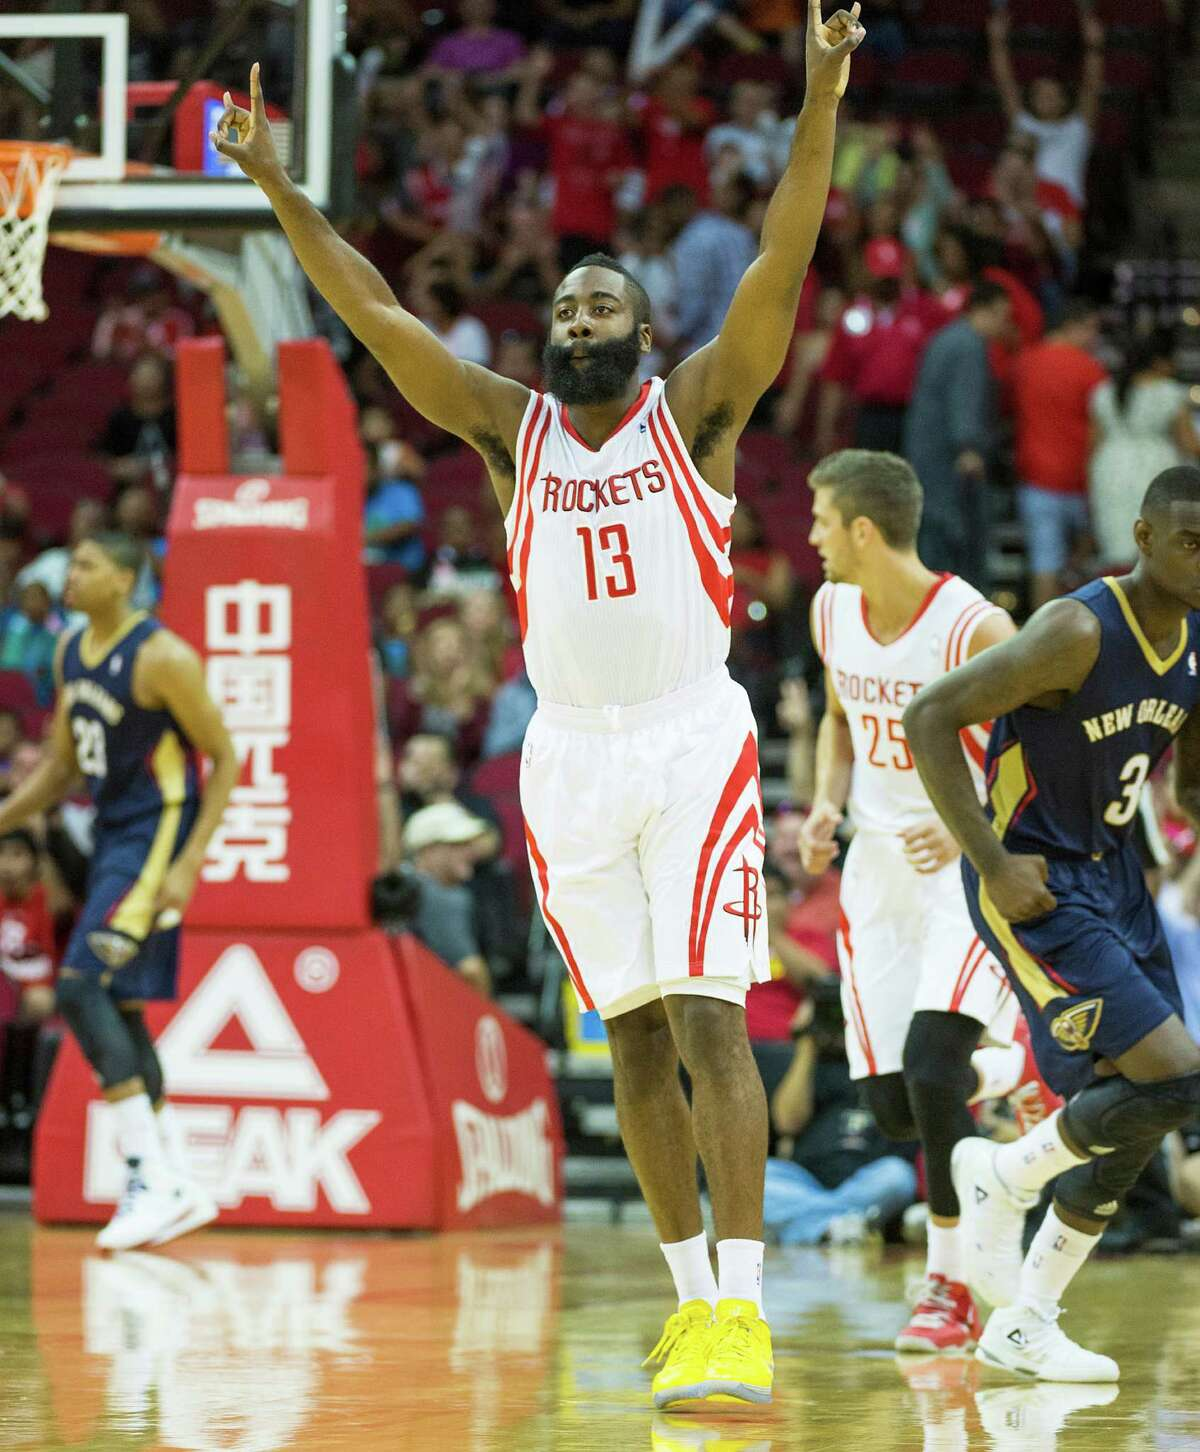 Houston Rockets shooting guard James Harden celebrates after hitting a 3-pointer during the first half of an NBA preseason basketball game against the New Orleans Pelicans at Toyota Center on Saturday, Oct. 5, 2013, in Houston. ( Smiley N. Pool / Houston Chronicle )